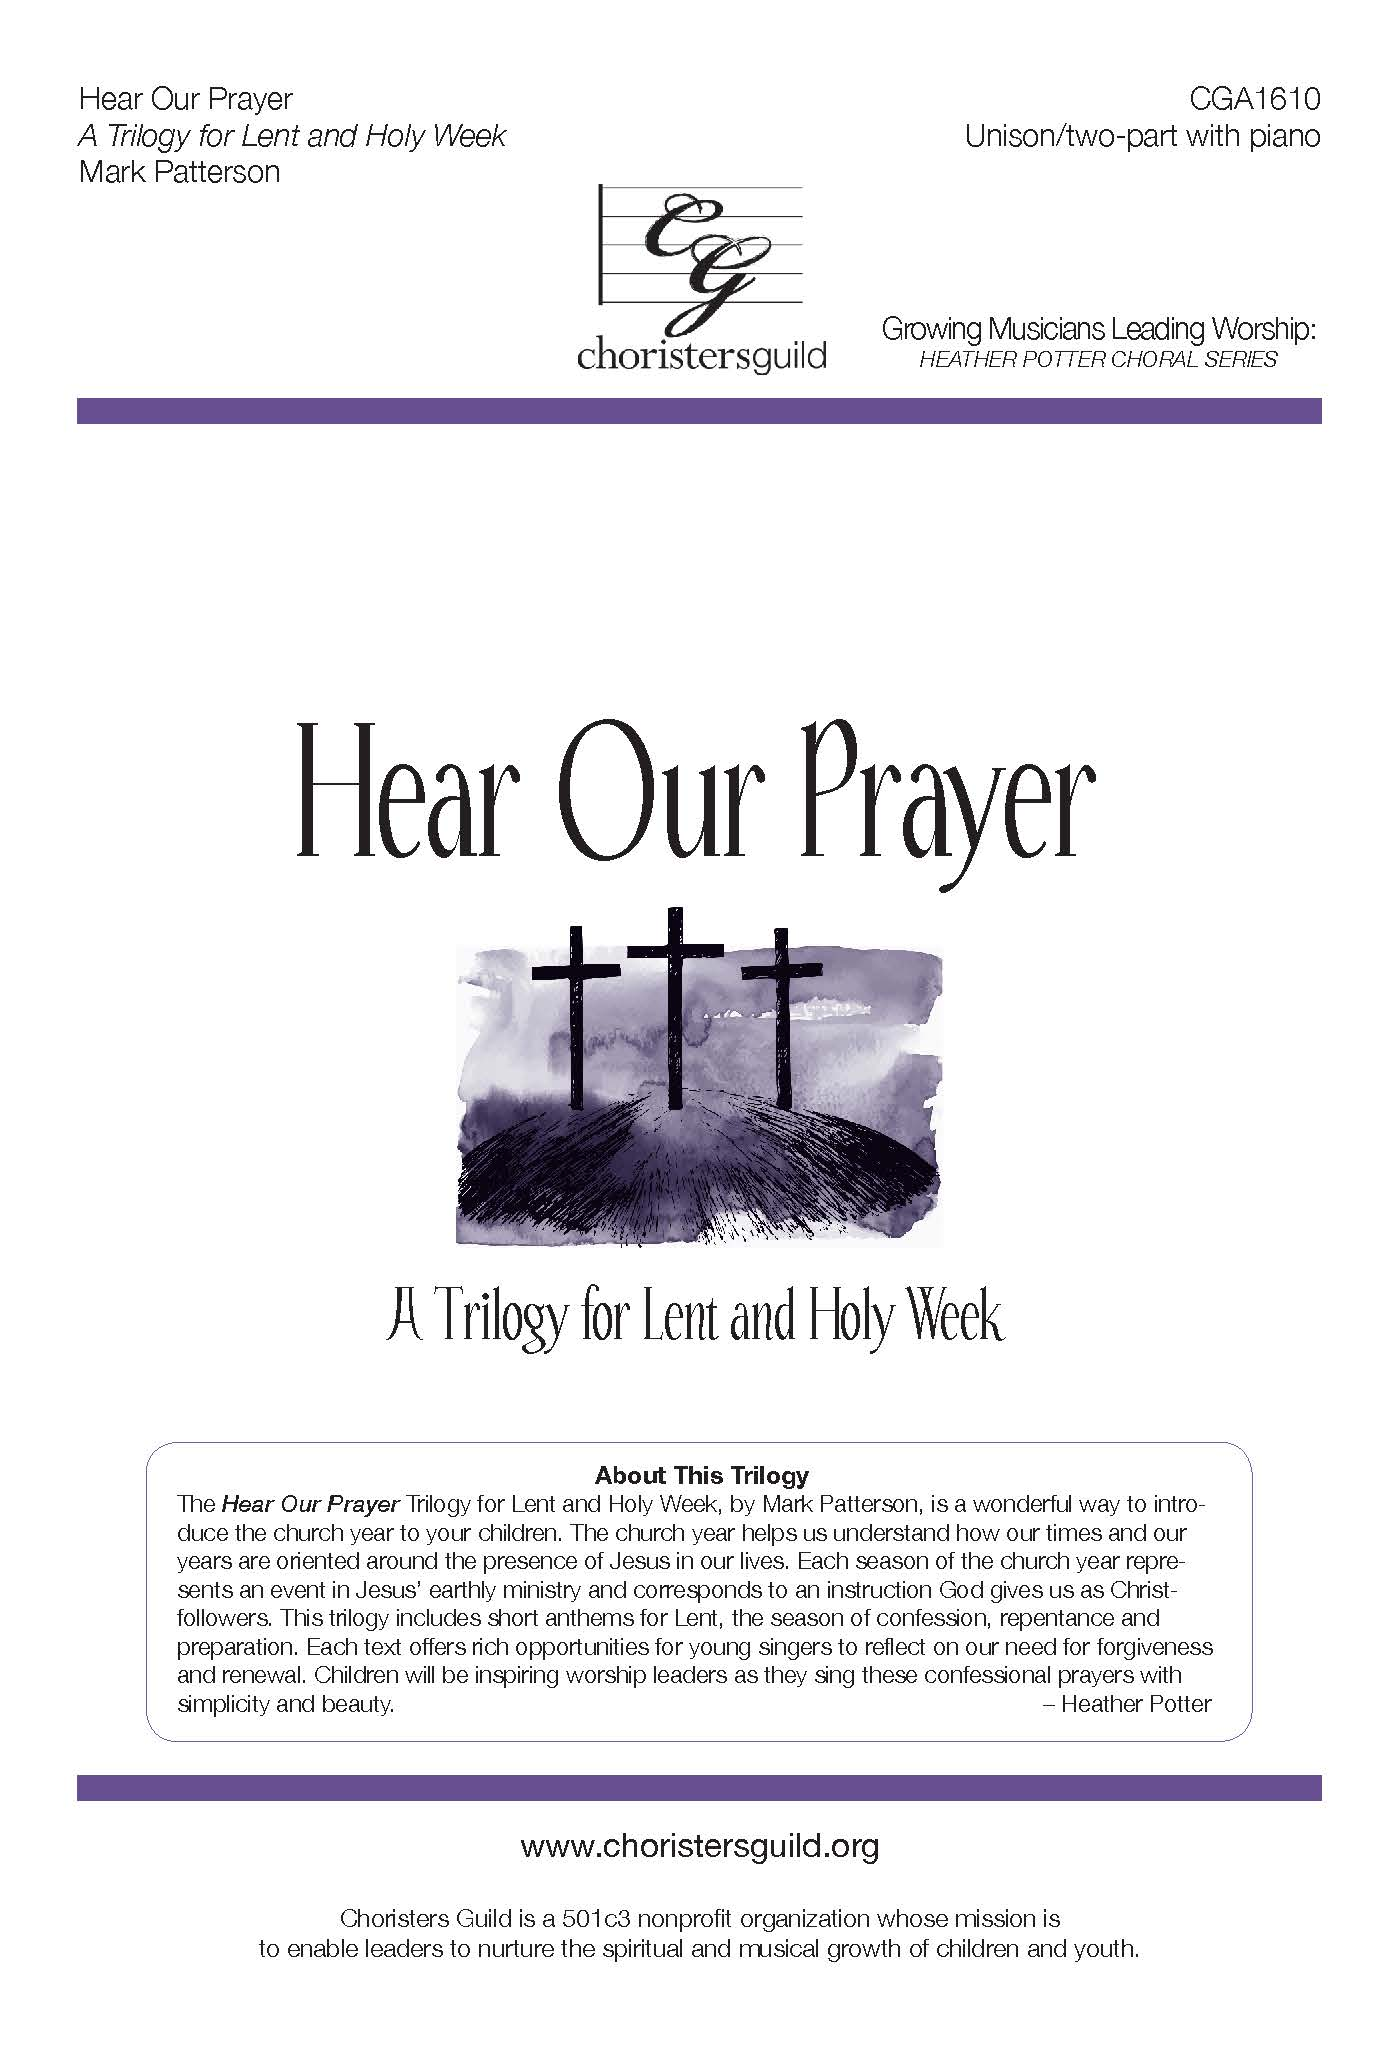 Hear Our Prayer: A Trilogy for Lent & Holy Week - Unison/Two-part